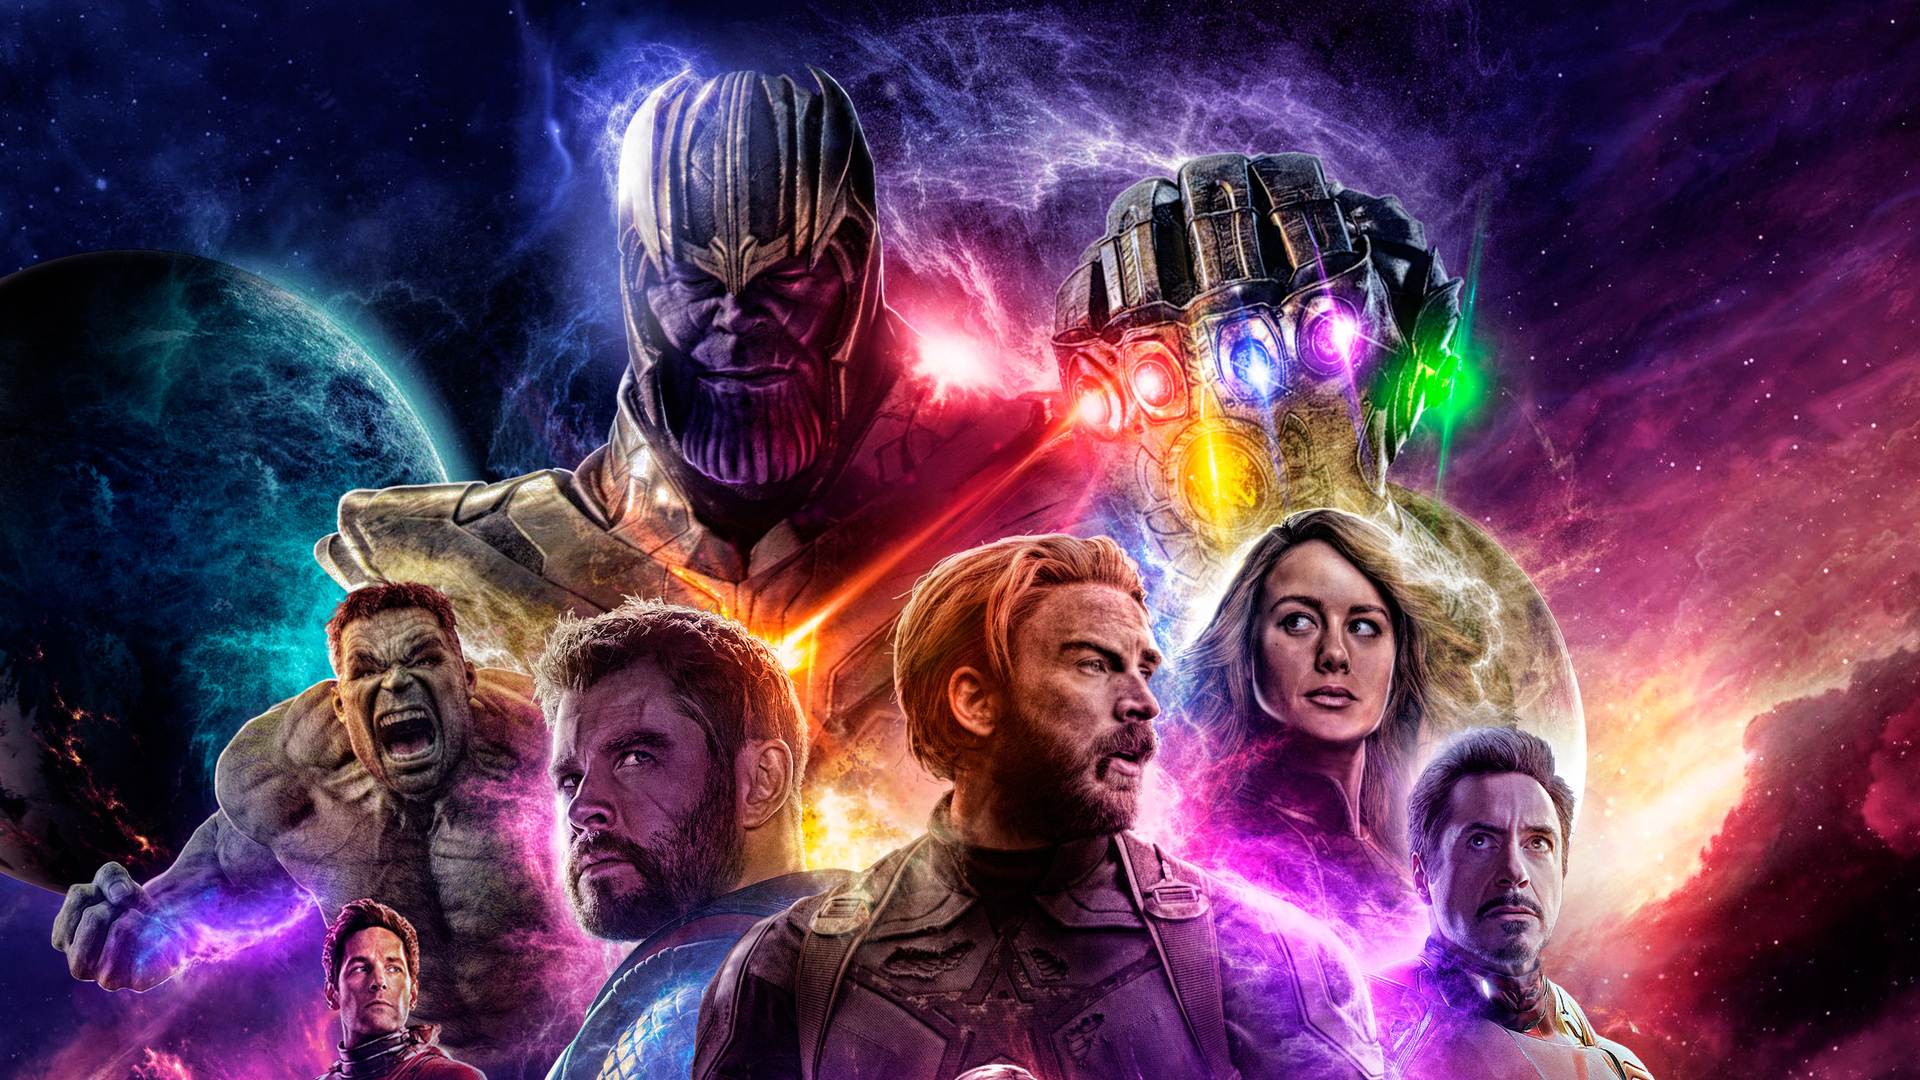 Avengers 4 End Game Hd Wallpapers In 4k Captain America: 1920x1080 Avengers 4 End Game 2019 Laptop Full HD 1080P HD